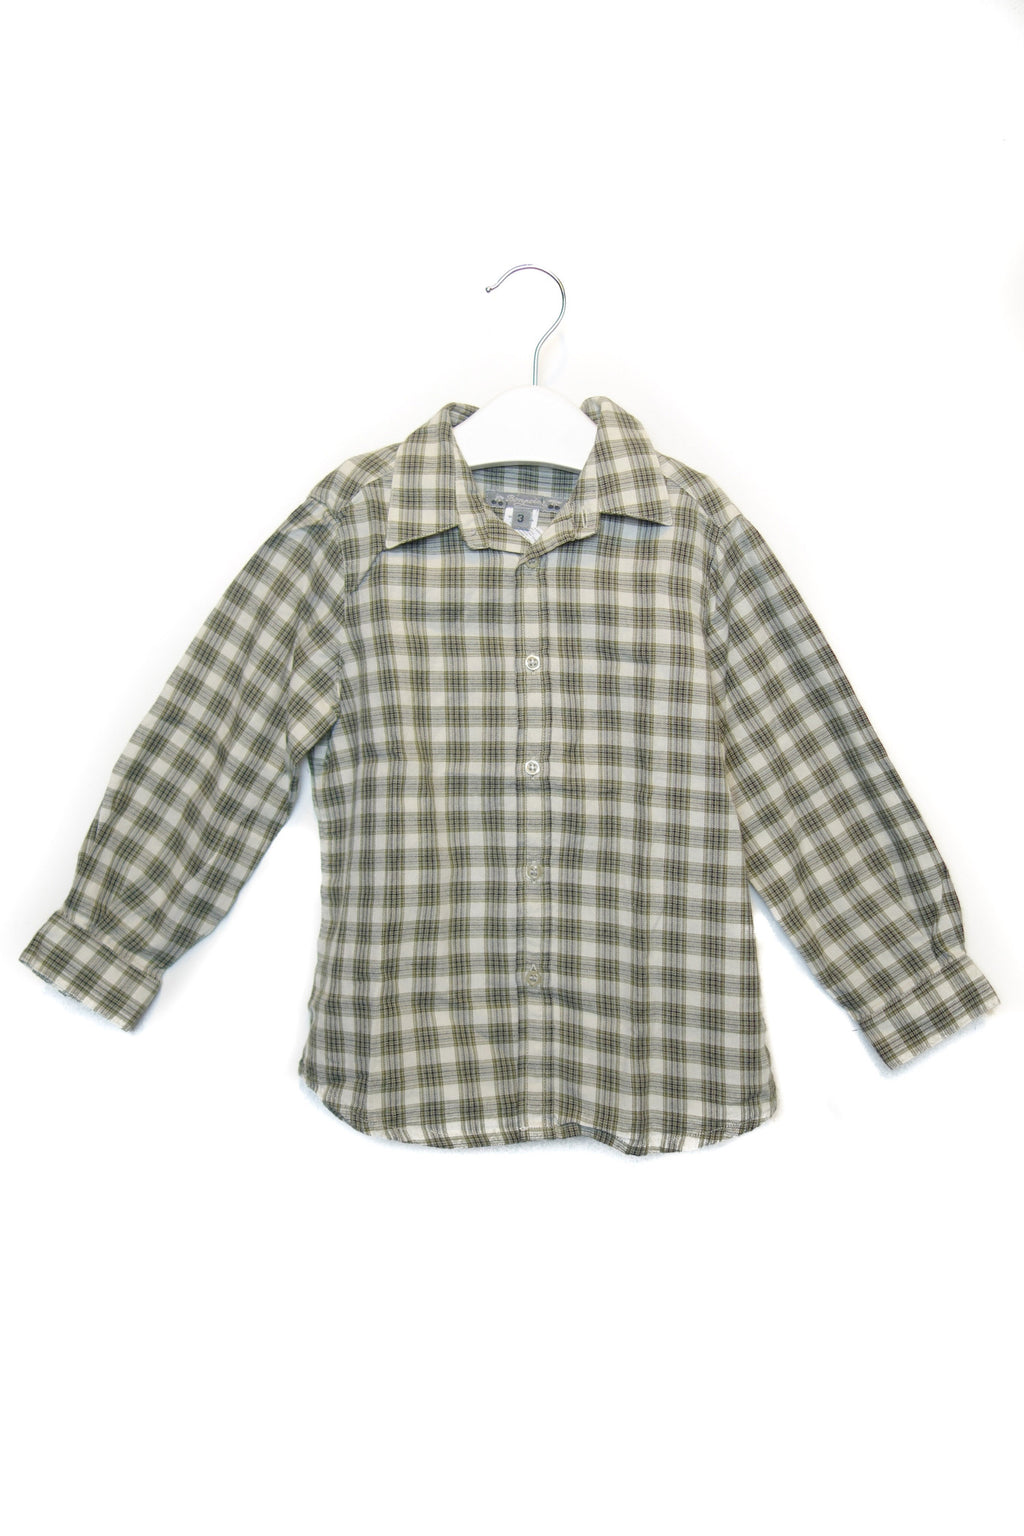 10001754 Bonpoint Kids~Shirt 3T at Retykle